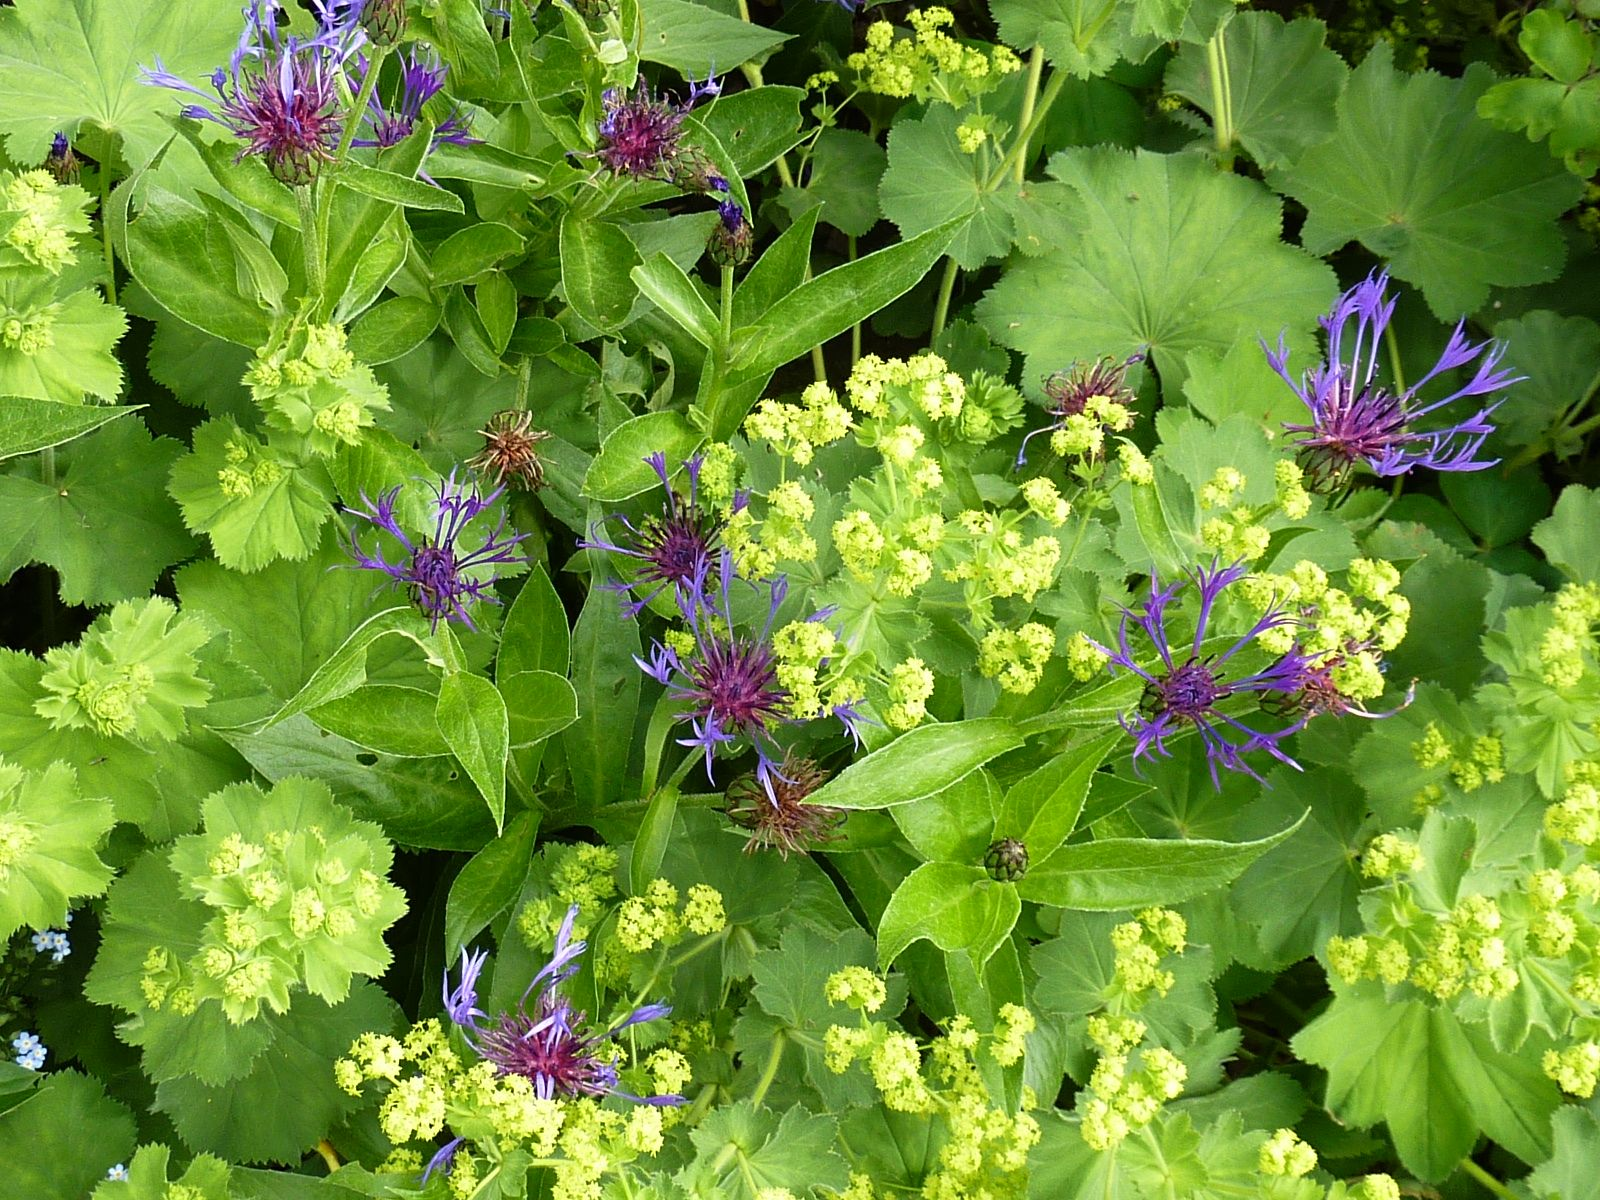 Alchemilla Mollis with is crinkled leaves and sulphur yellow